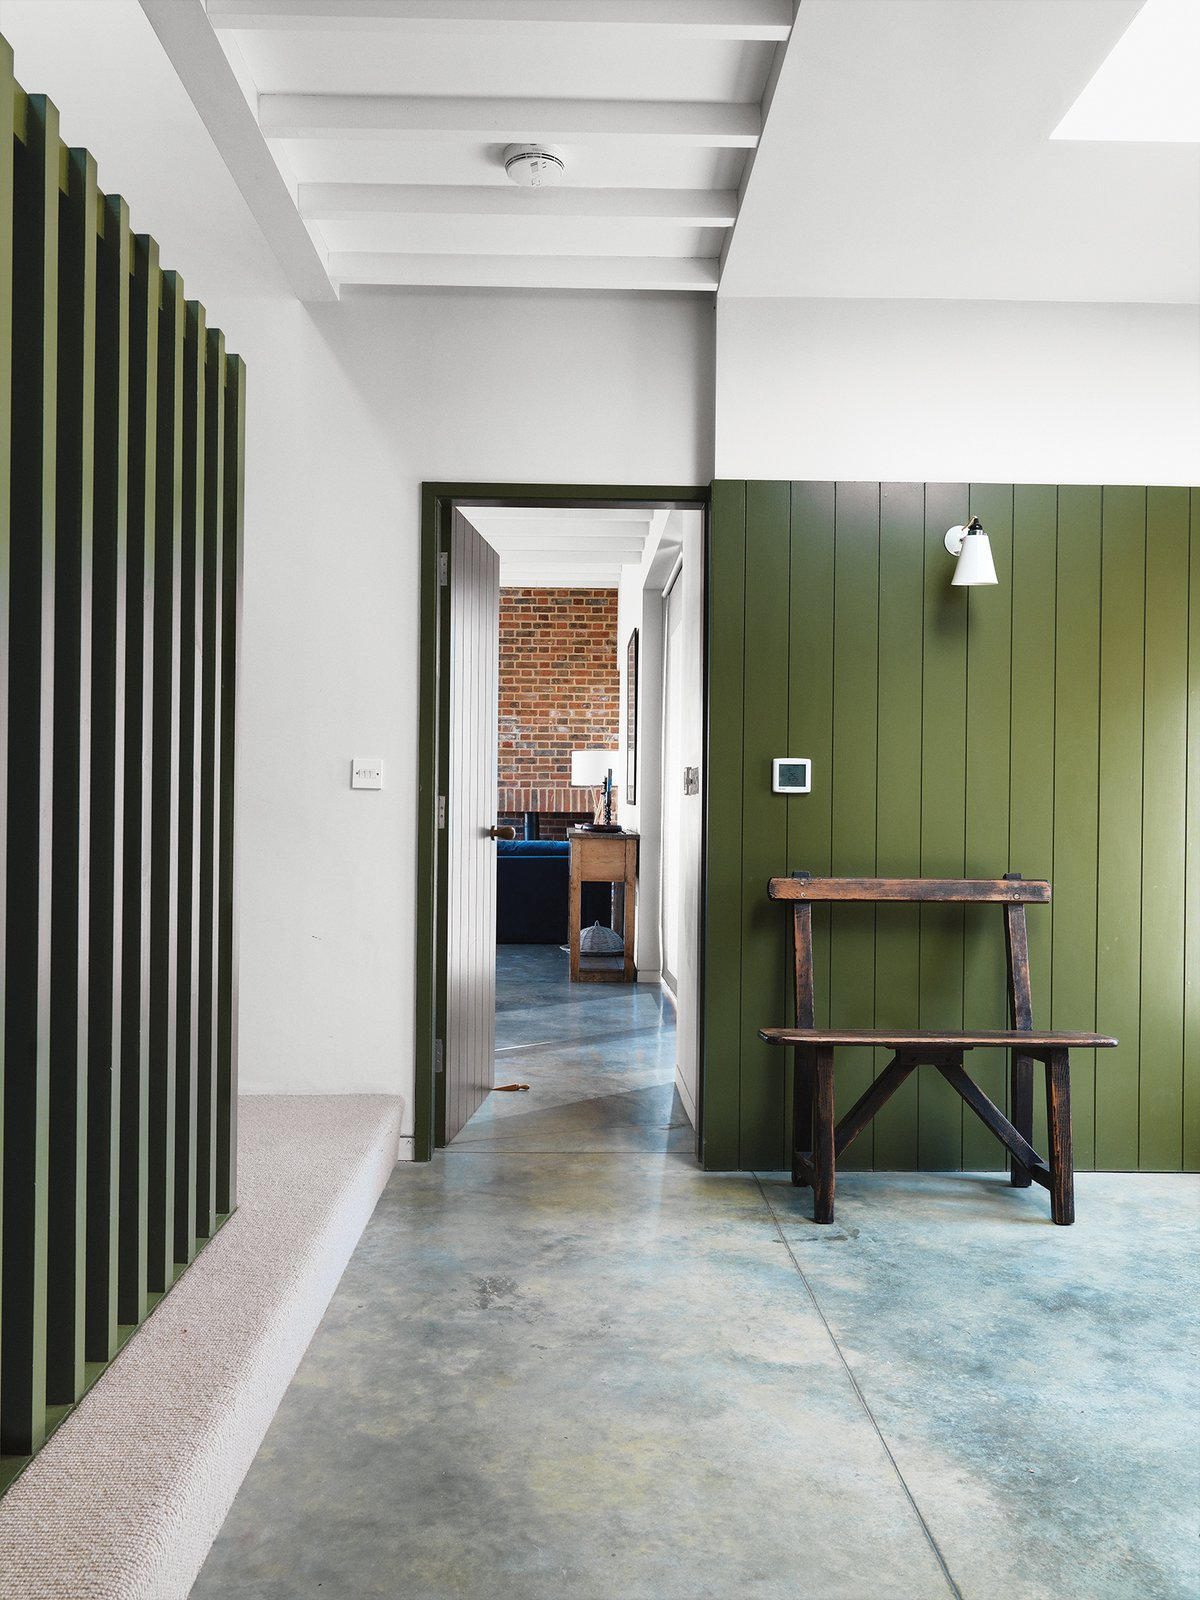 #color #huntergreen #wood #panel #farmhouse #interior #minimal #bench #antique #Suffolk #England #LucyMarston  36+ Interior Color Pop Ideas For Modern Homes by Dwell